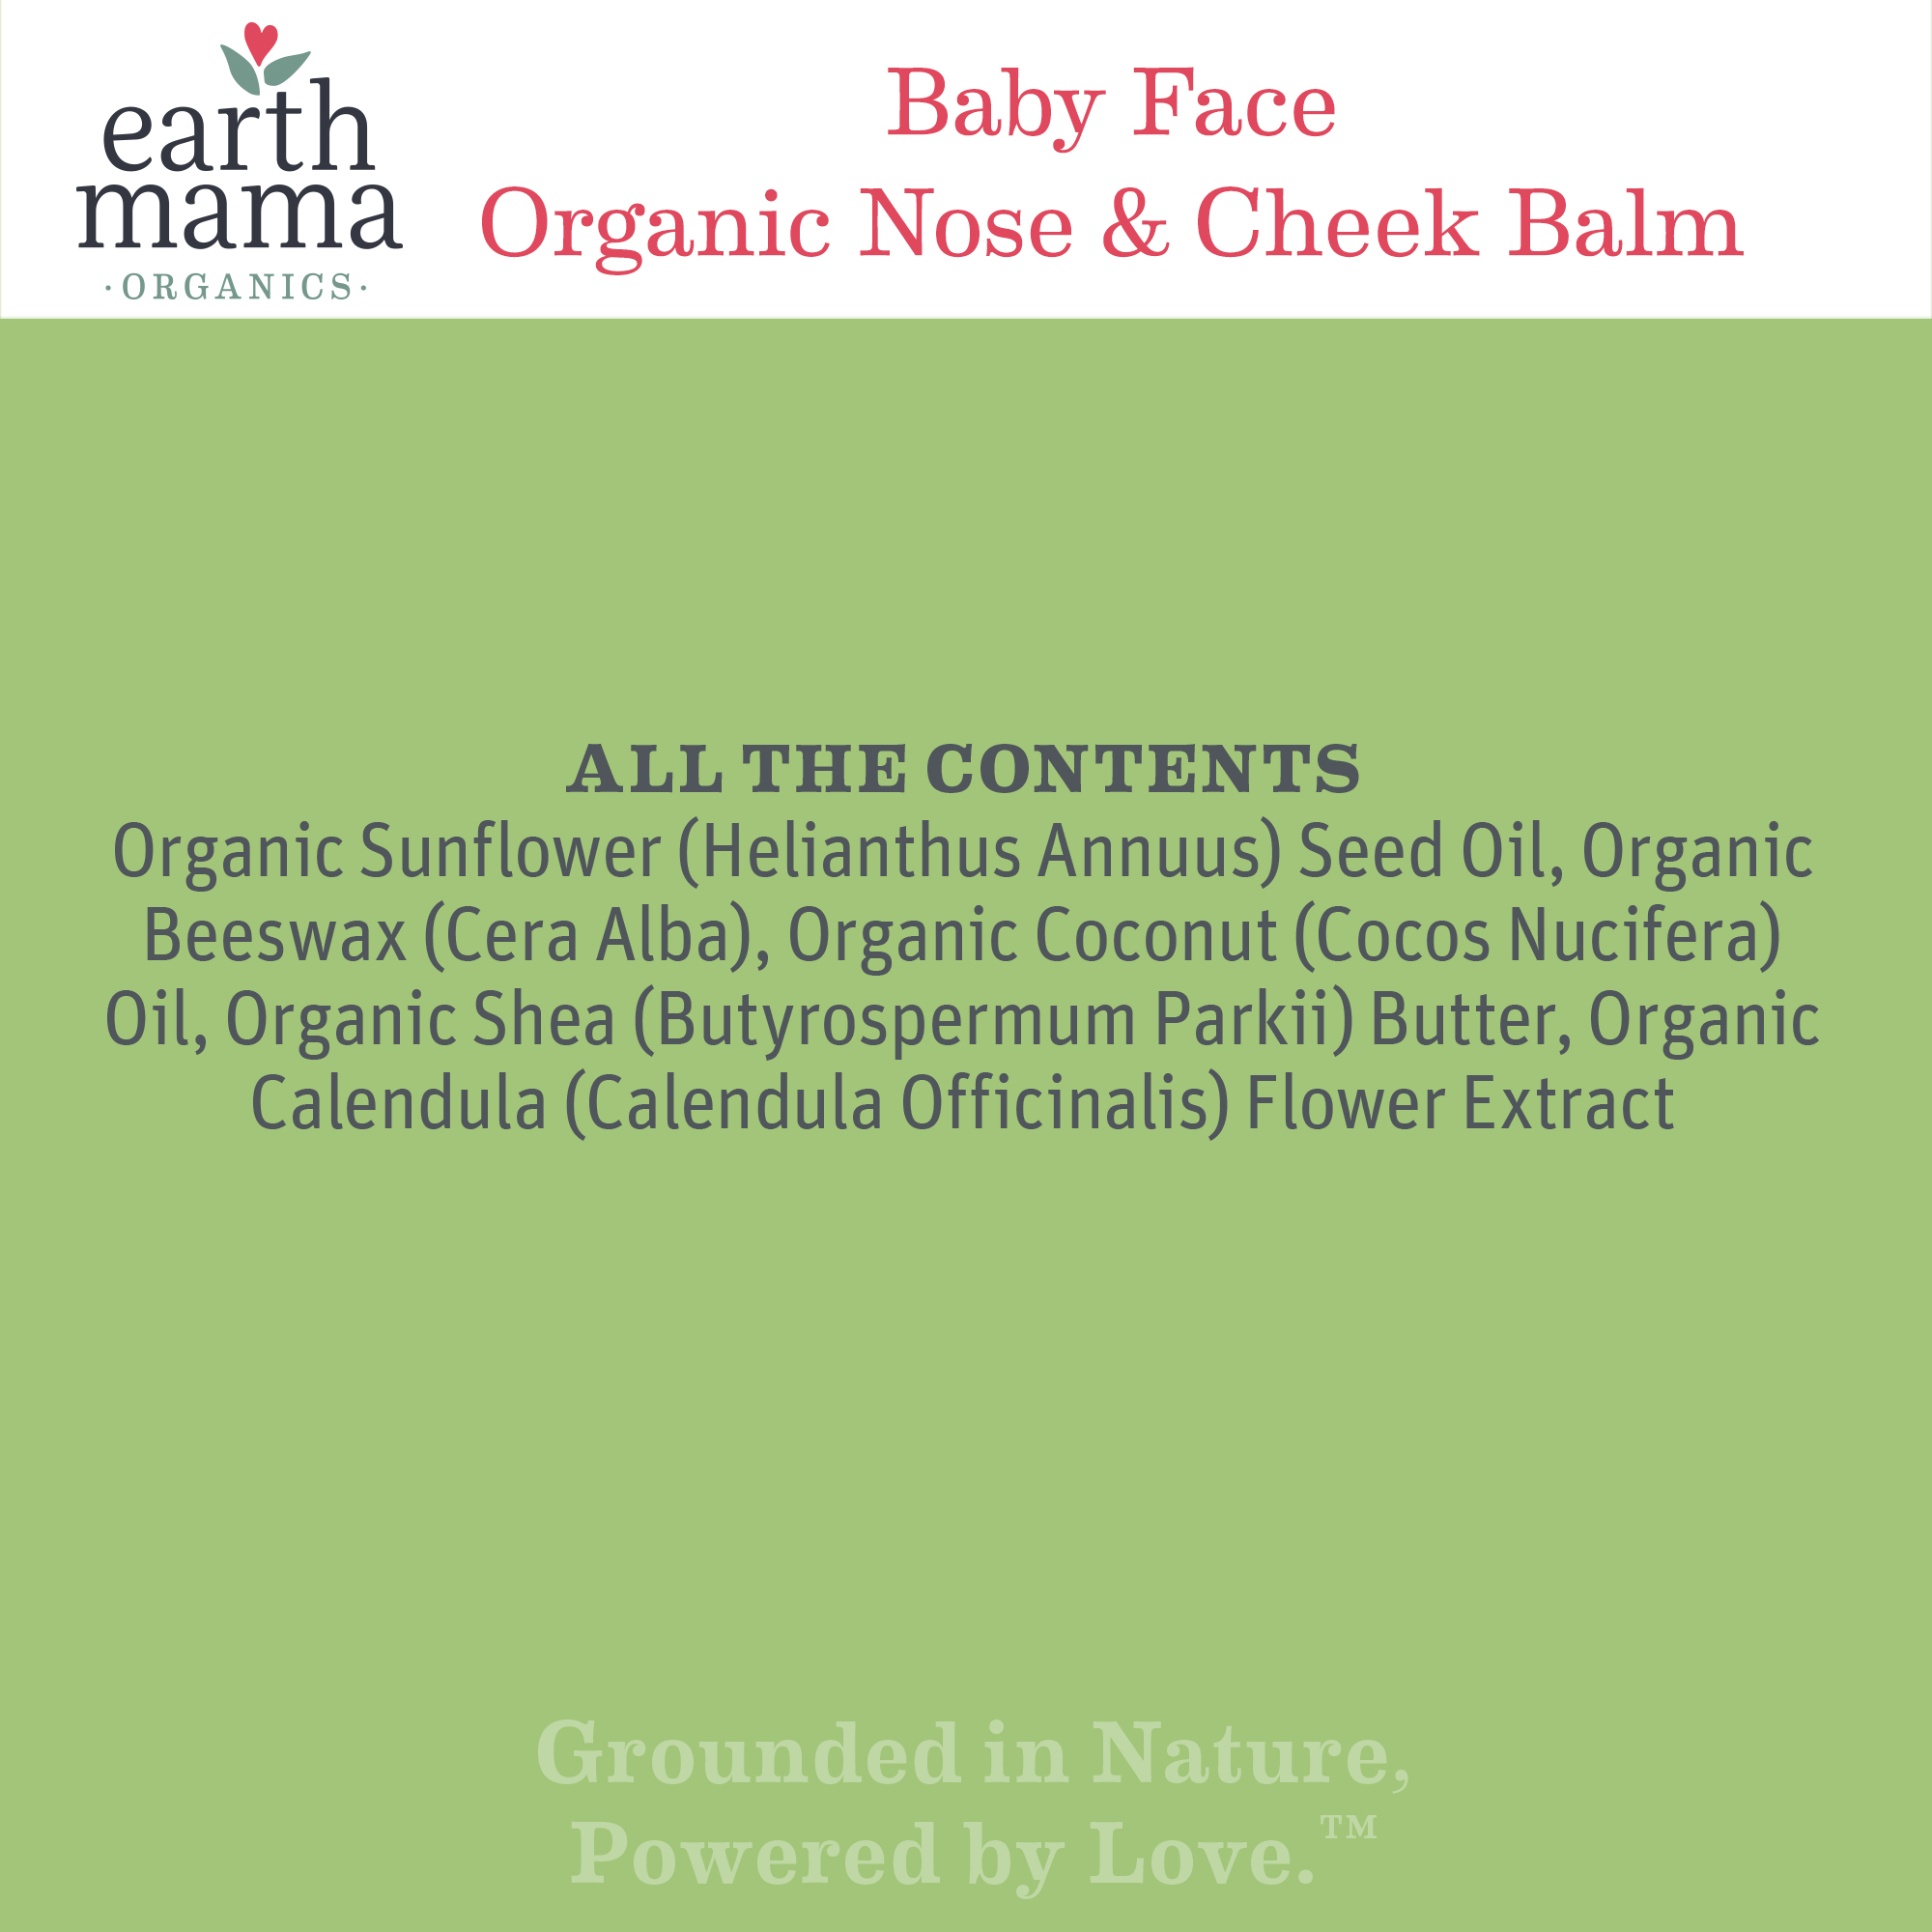 earth-mama-organics-baby-face-nose-cheek-balm-contents